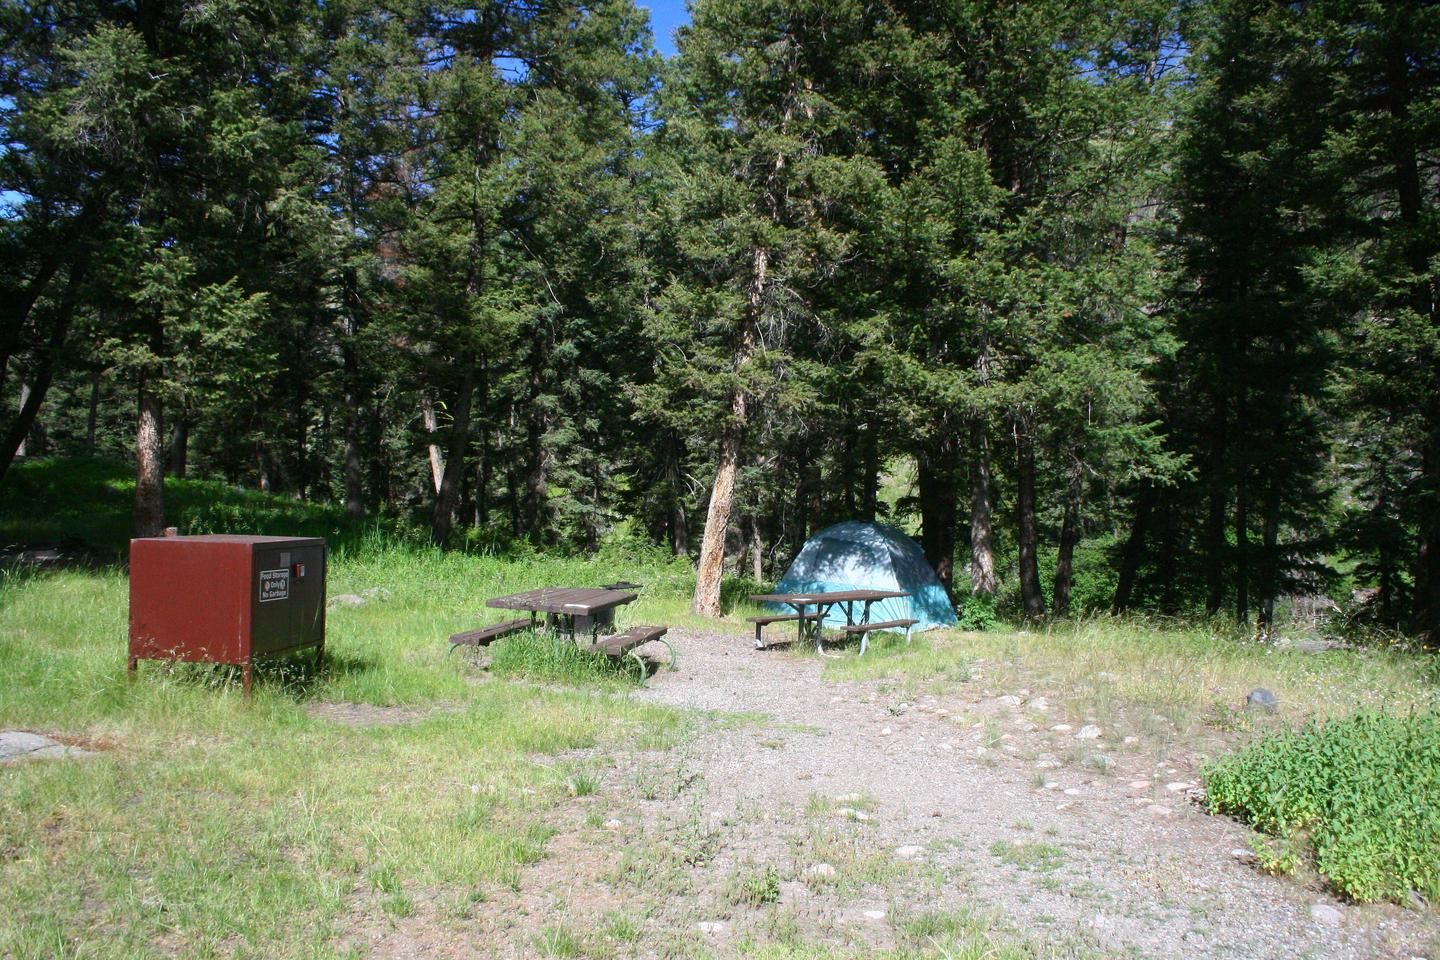 Slough Creek Campground site #12.Slough Creek Campground site #12